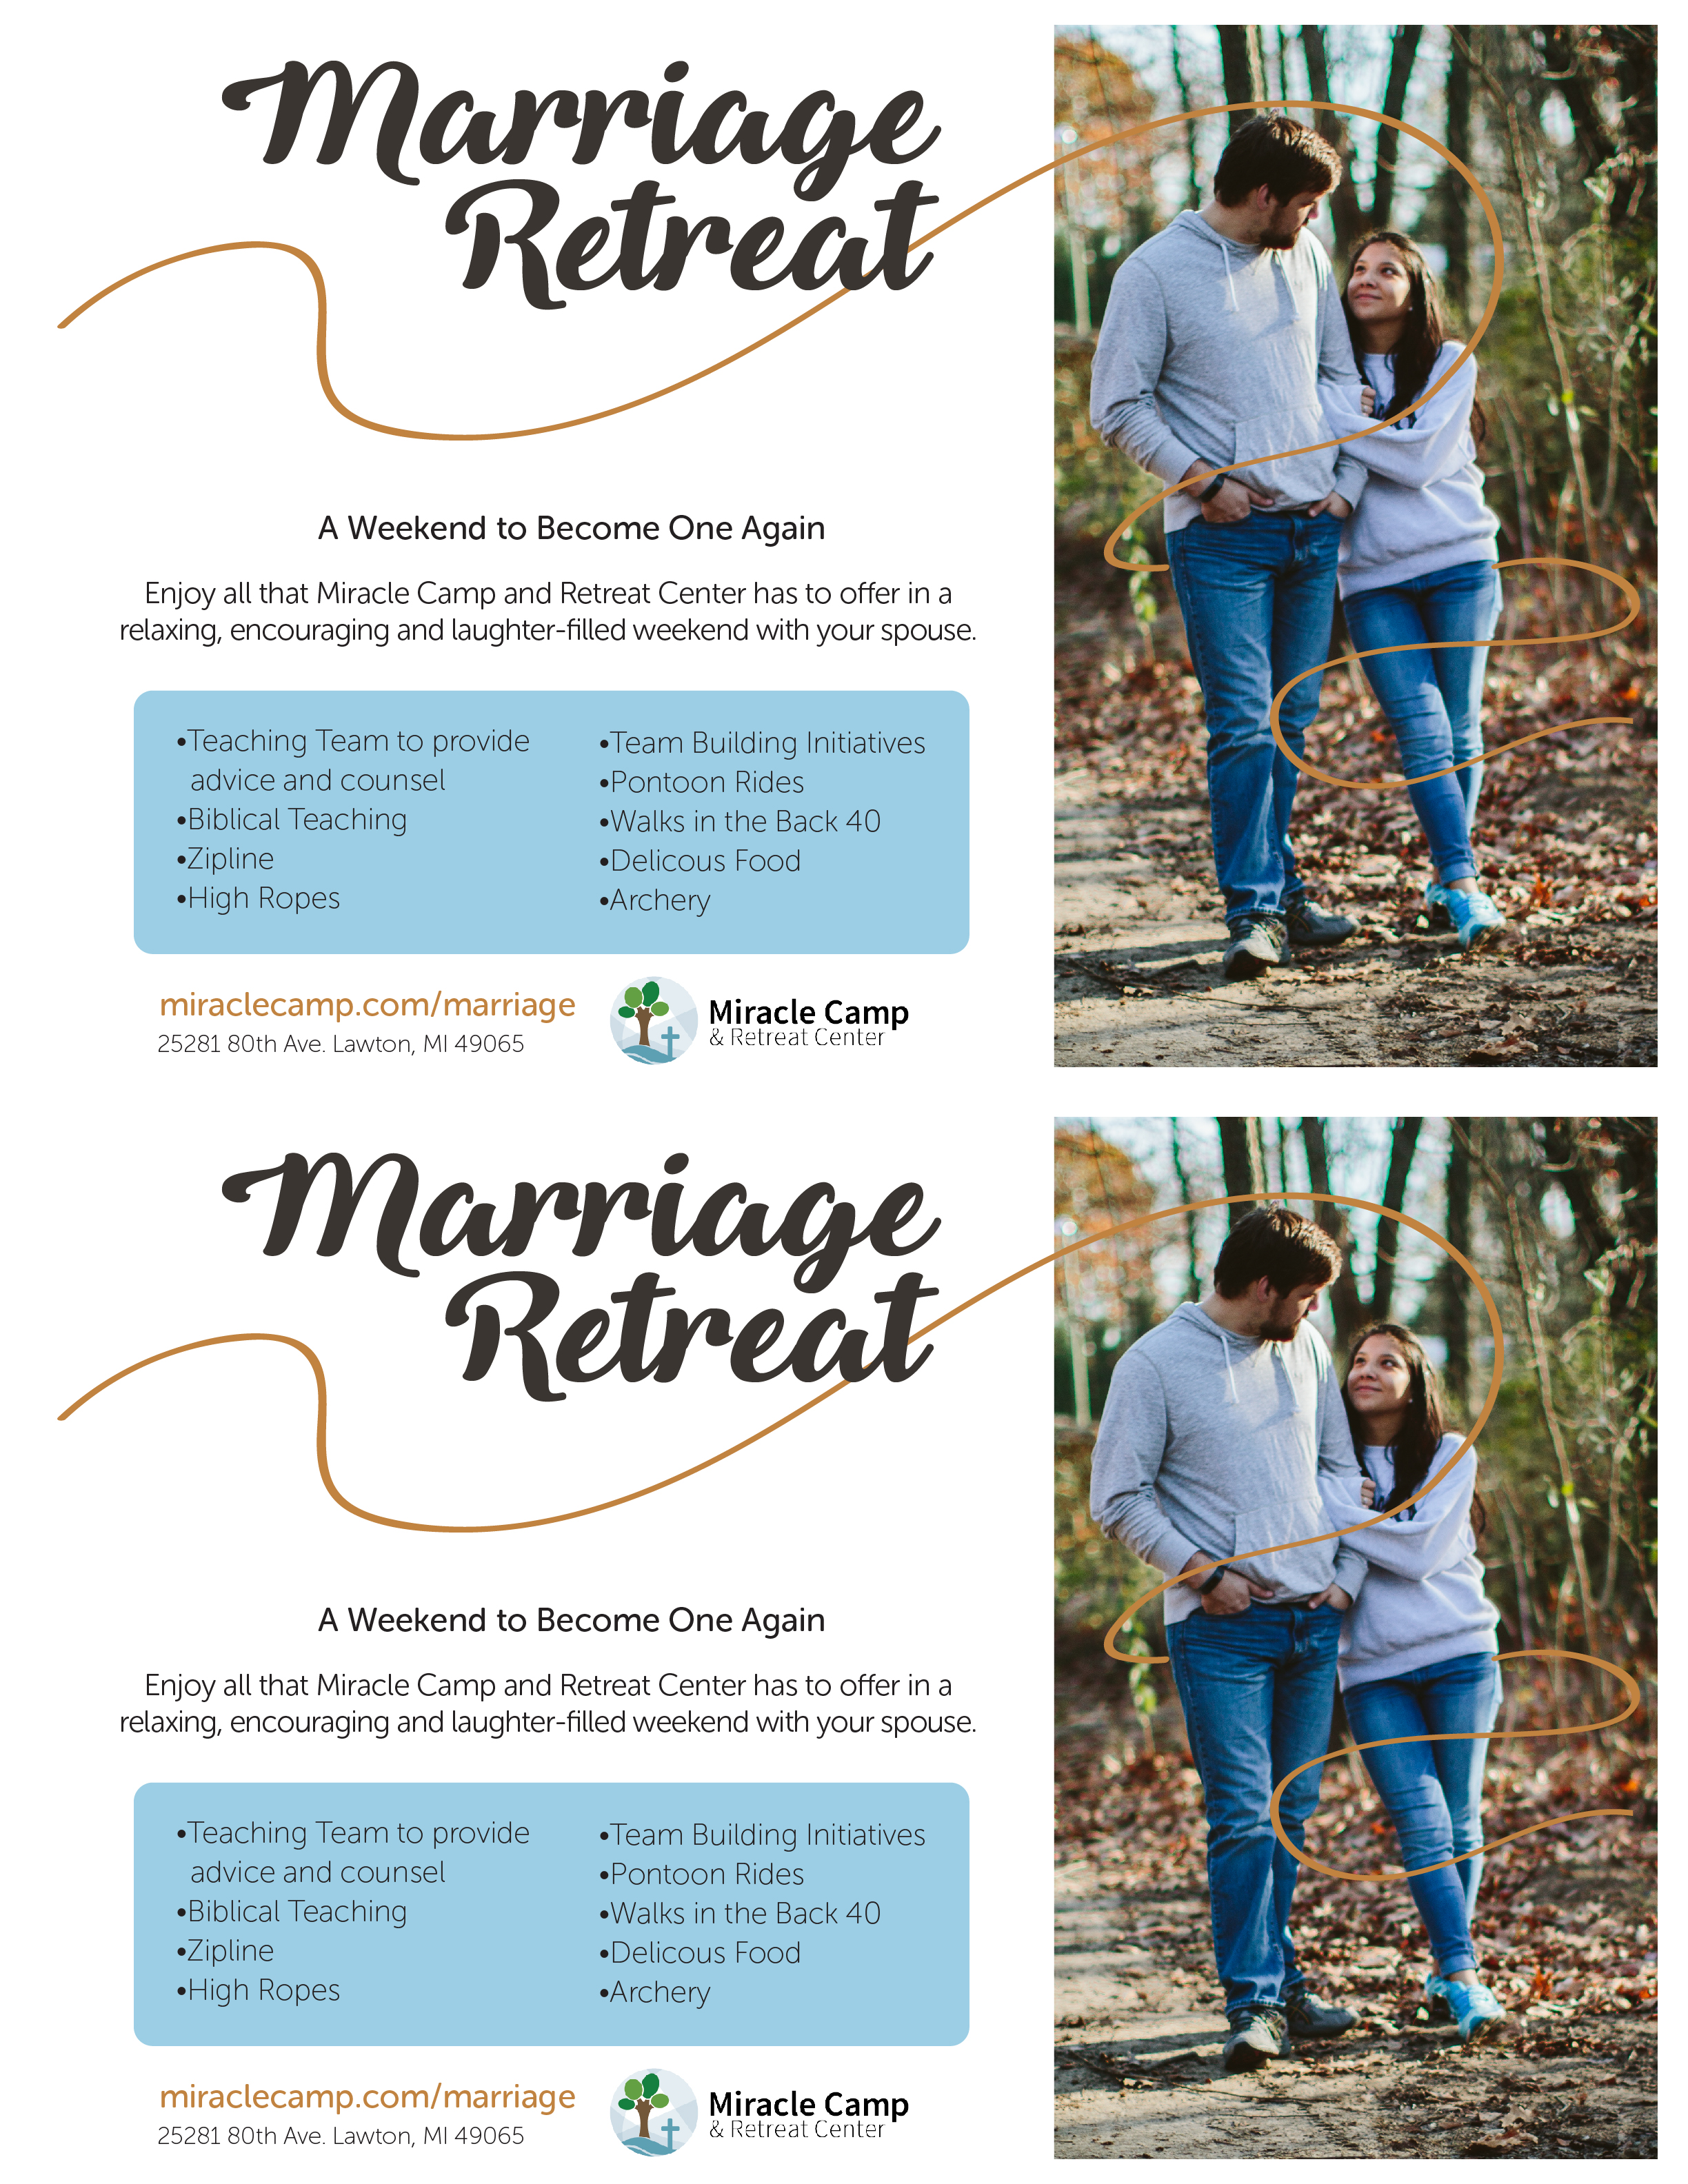 Marriage Retreat Promotional Page | Miracle Camp and Retreat Center